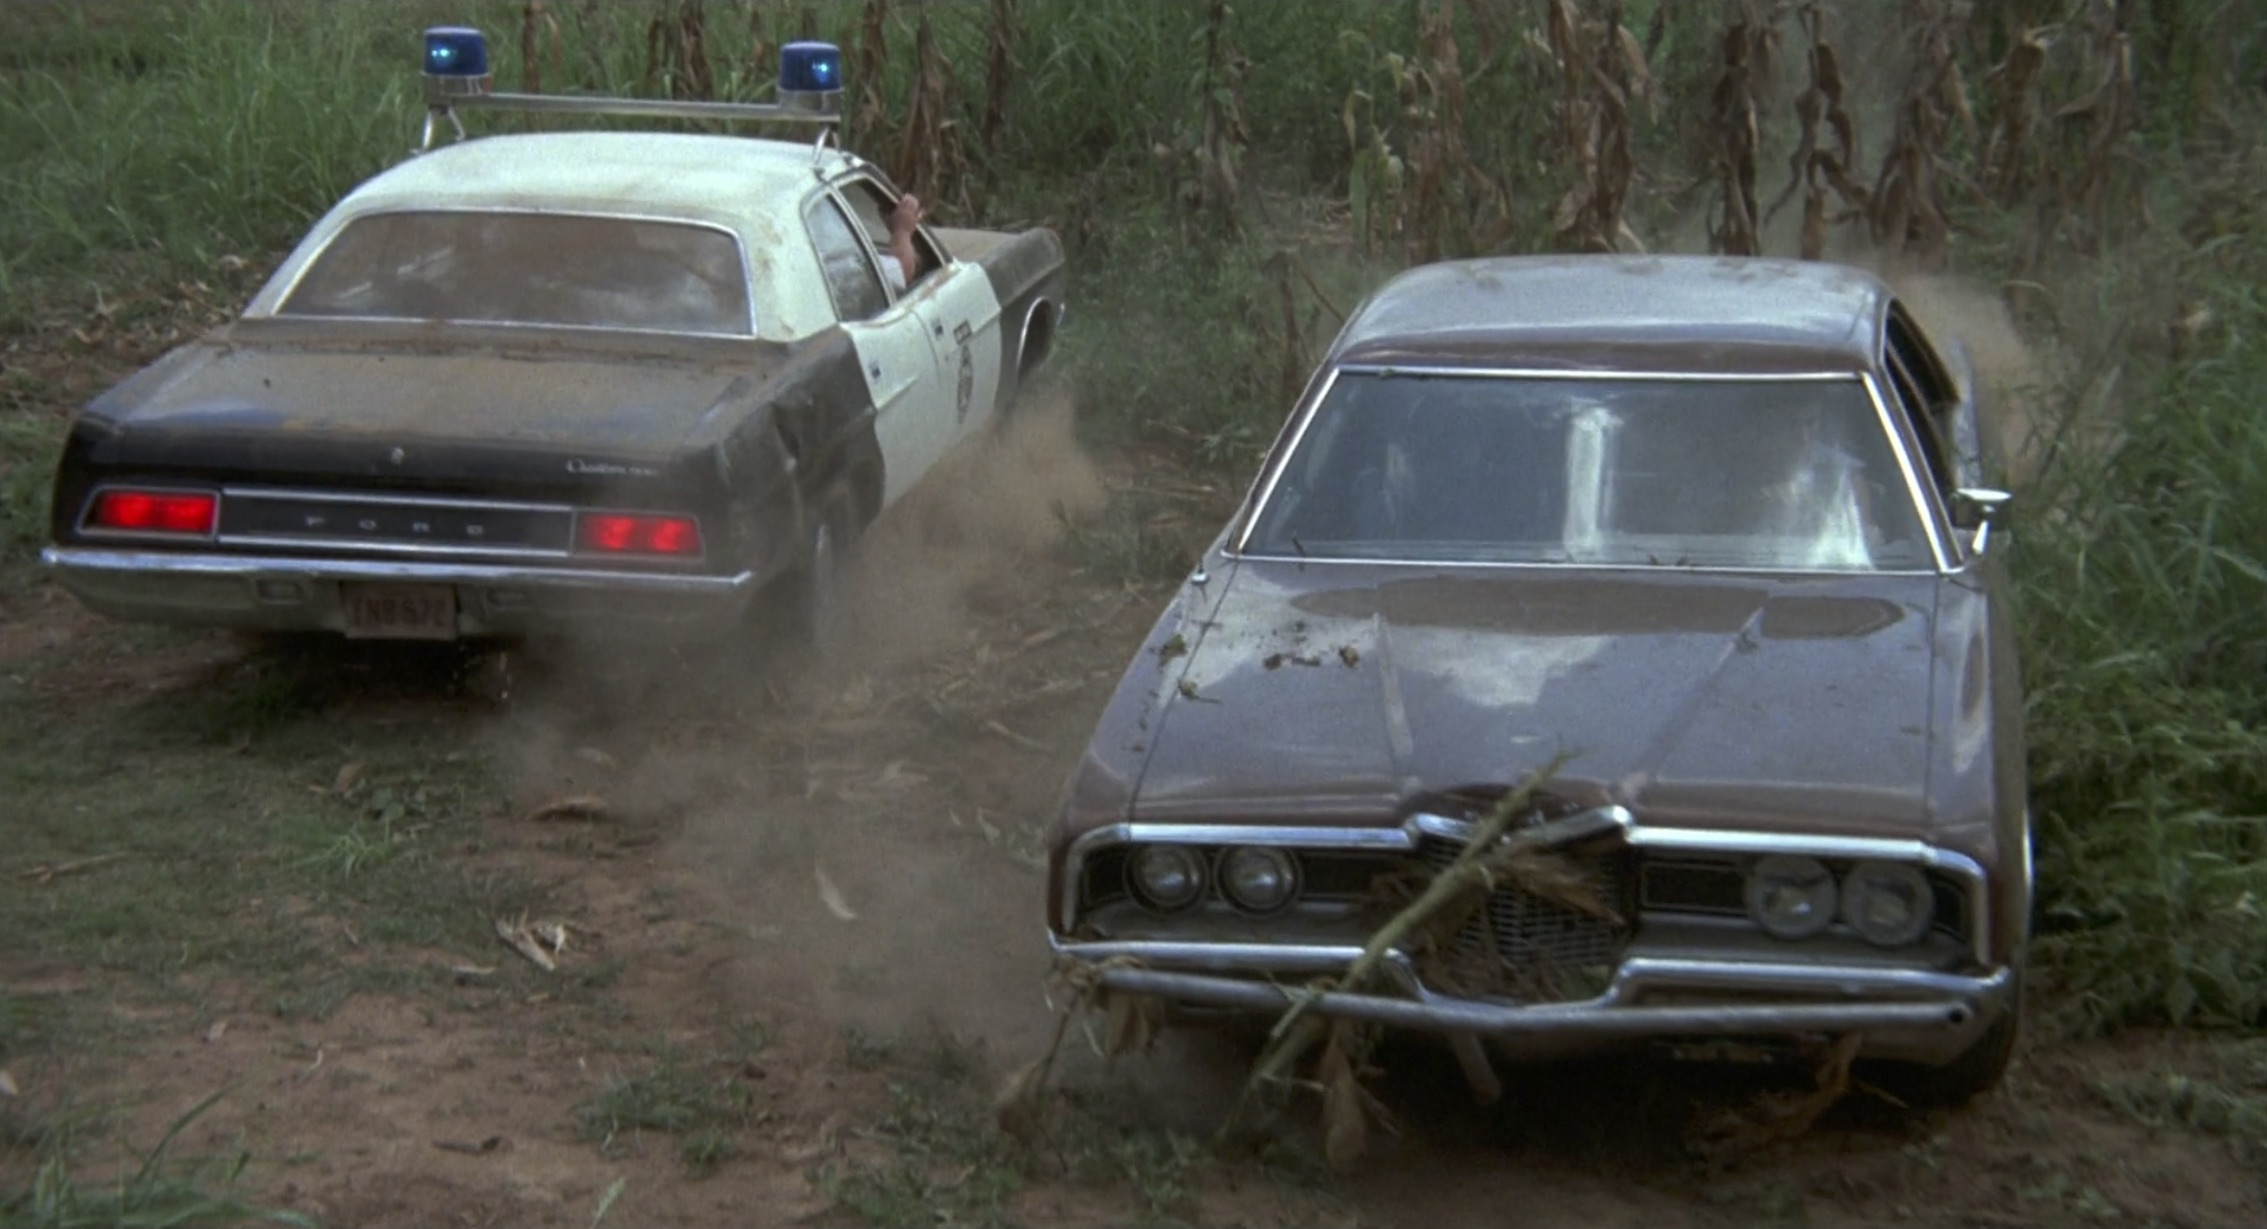 Burt Reynolds White Lightning cops in corn